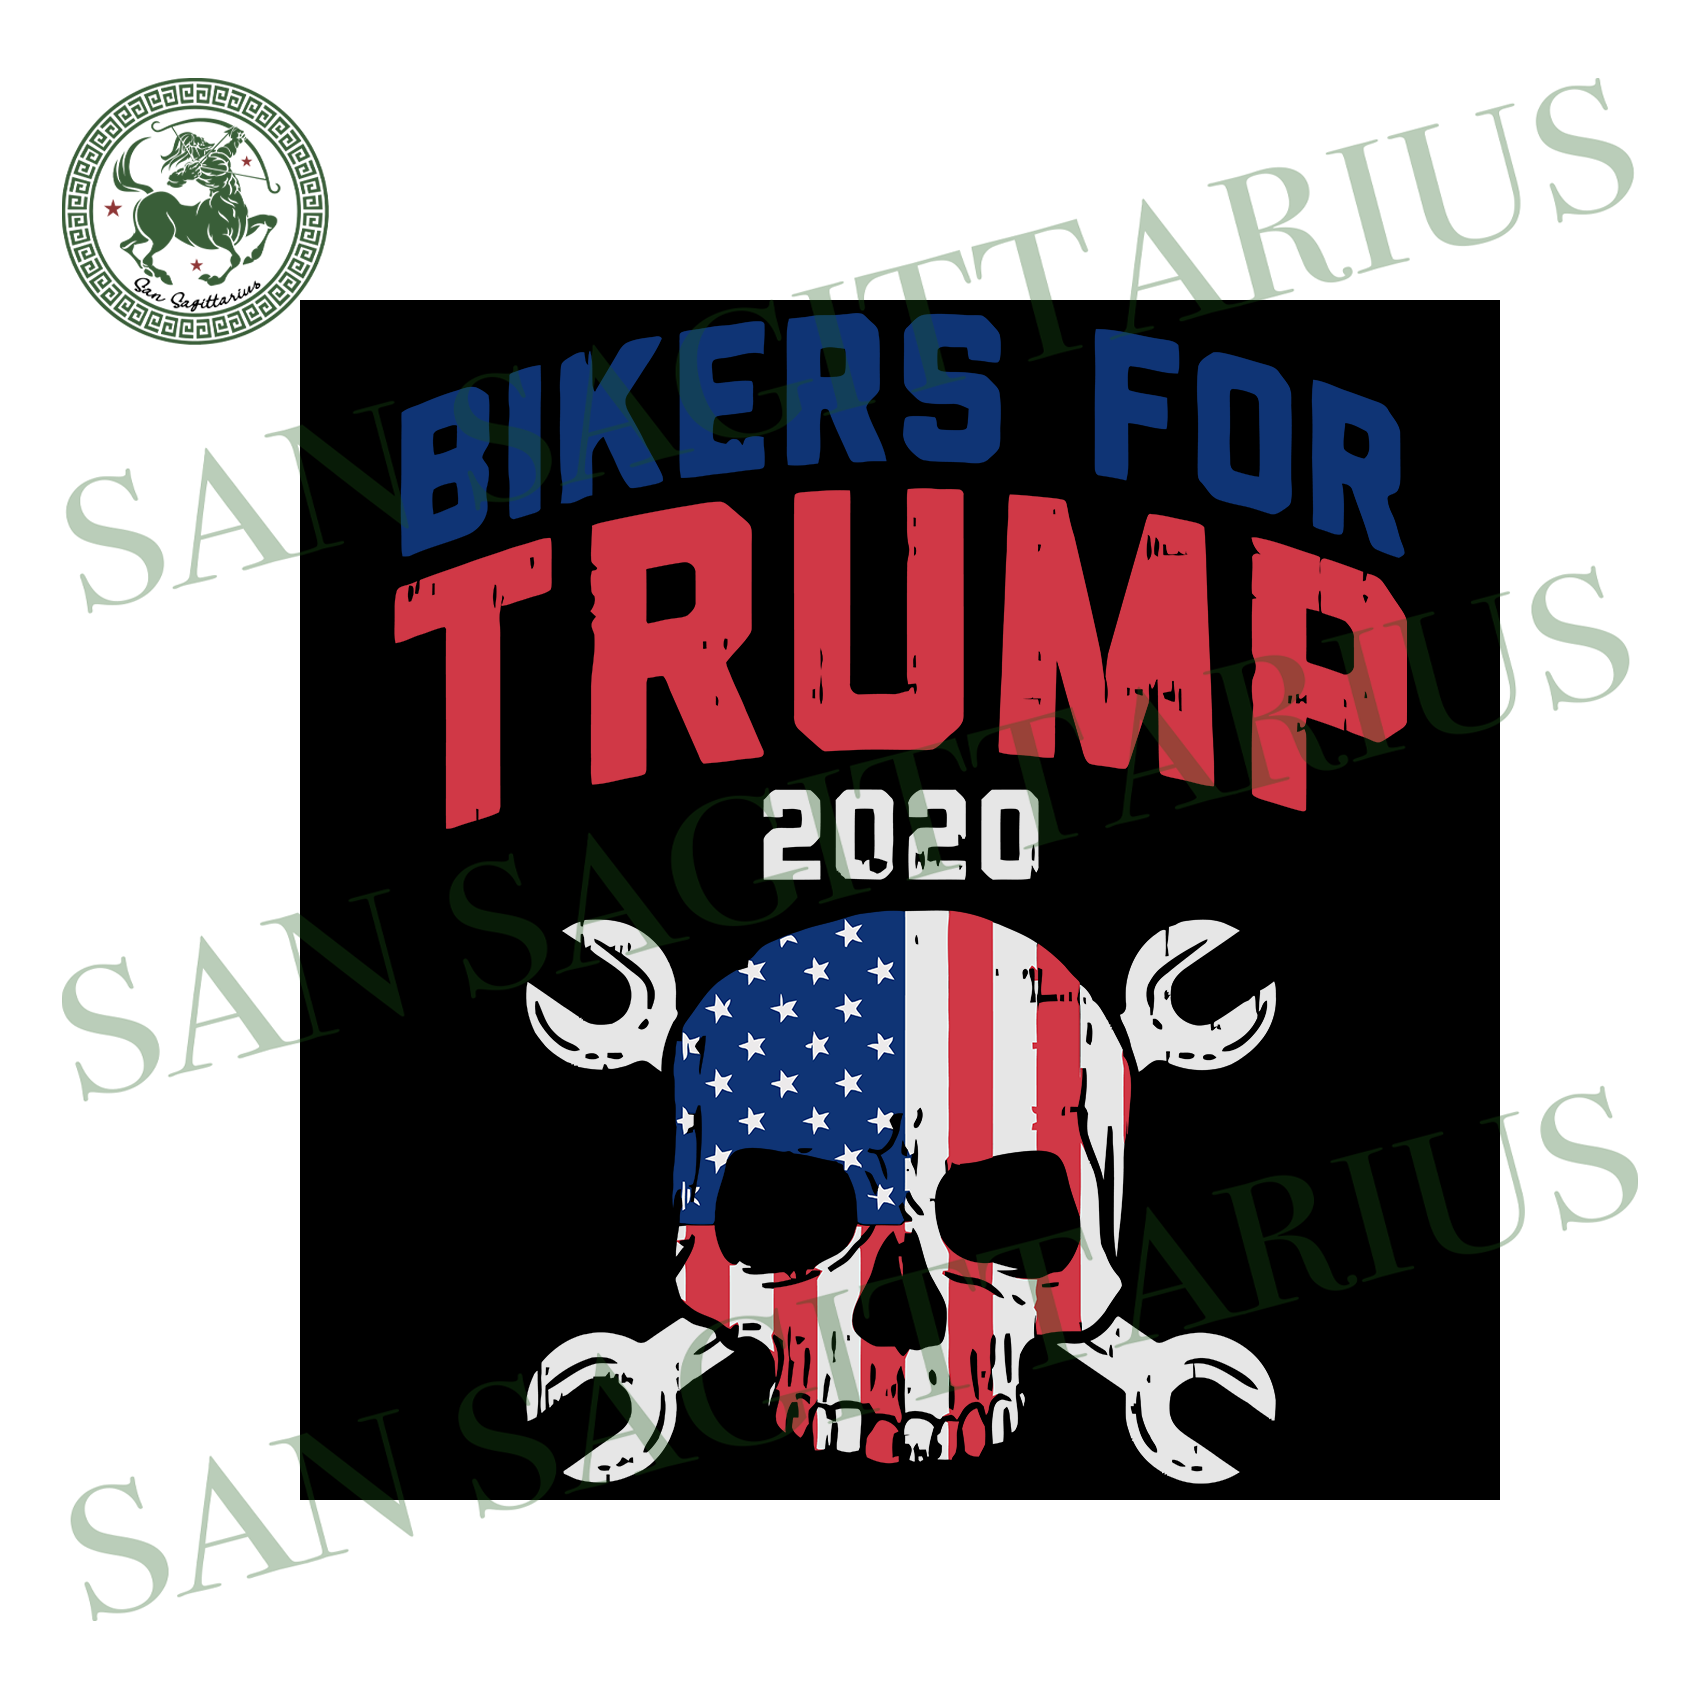 Bikers for Trump 2020 svg,svg,Pro Trump 2020 svg,president Trump 2020 svg,Supporter elections svg,political gift svg,svg cricut, silhouette svg files, cricut svg, silhouette svg, svg designs,